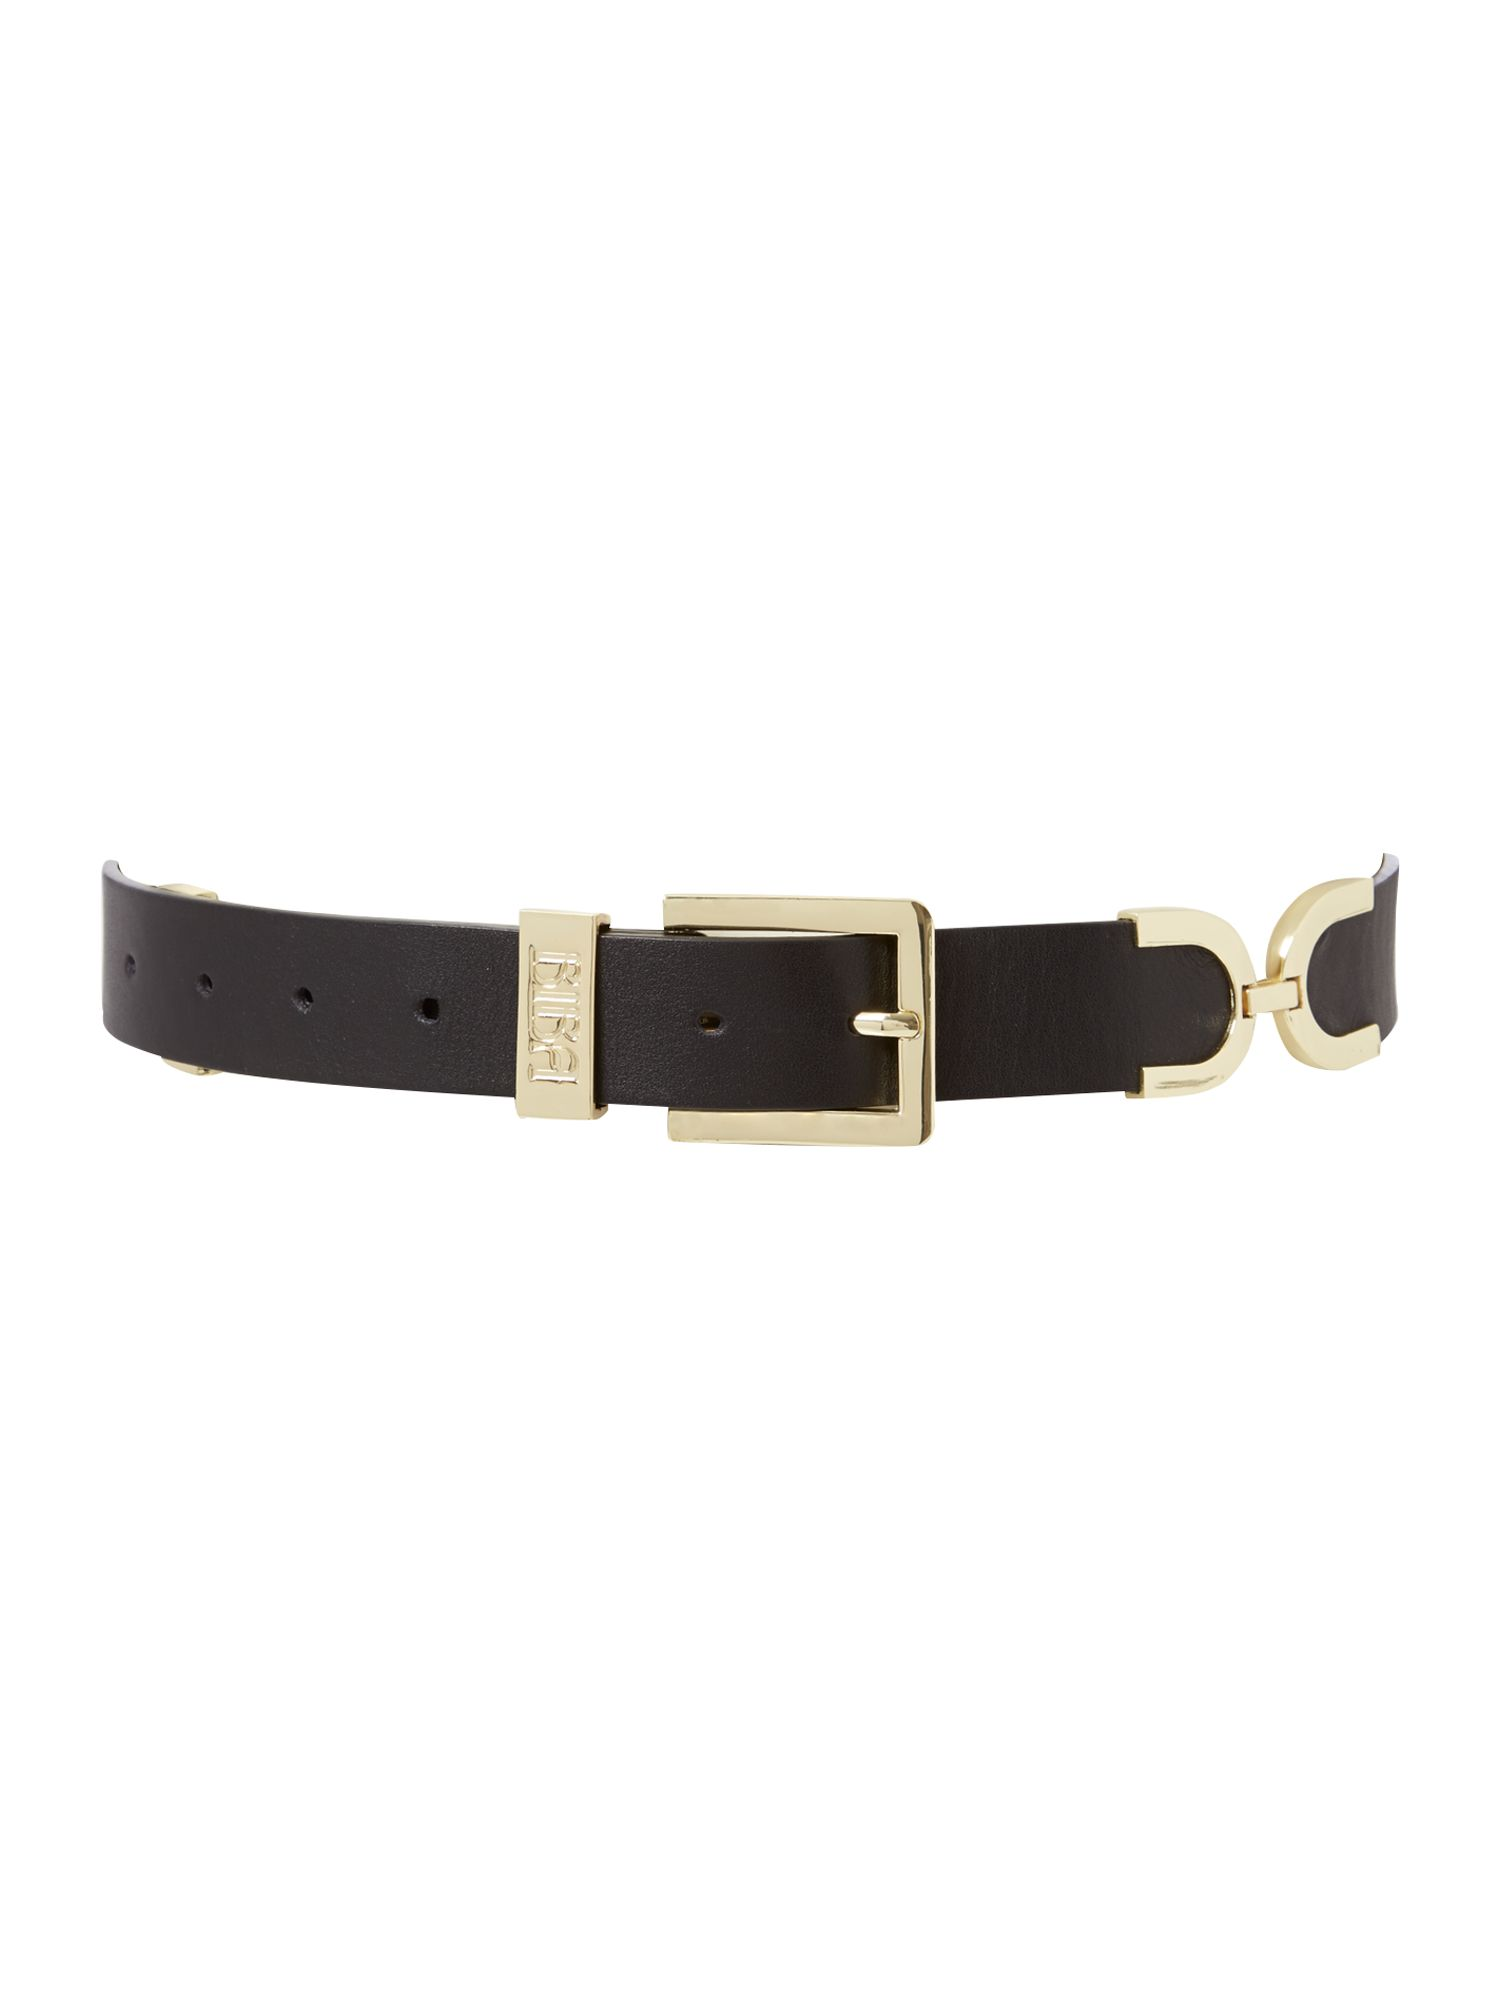 Dana trouser belt